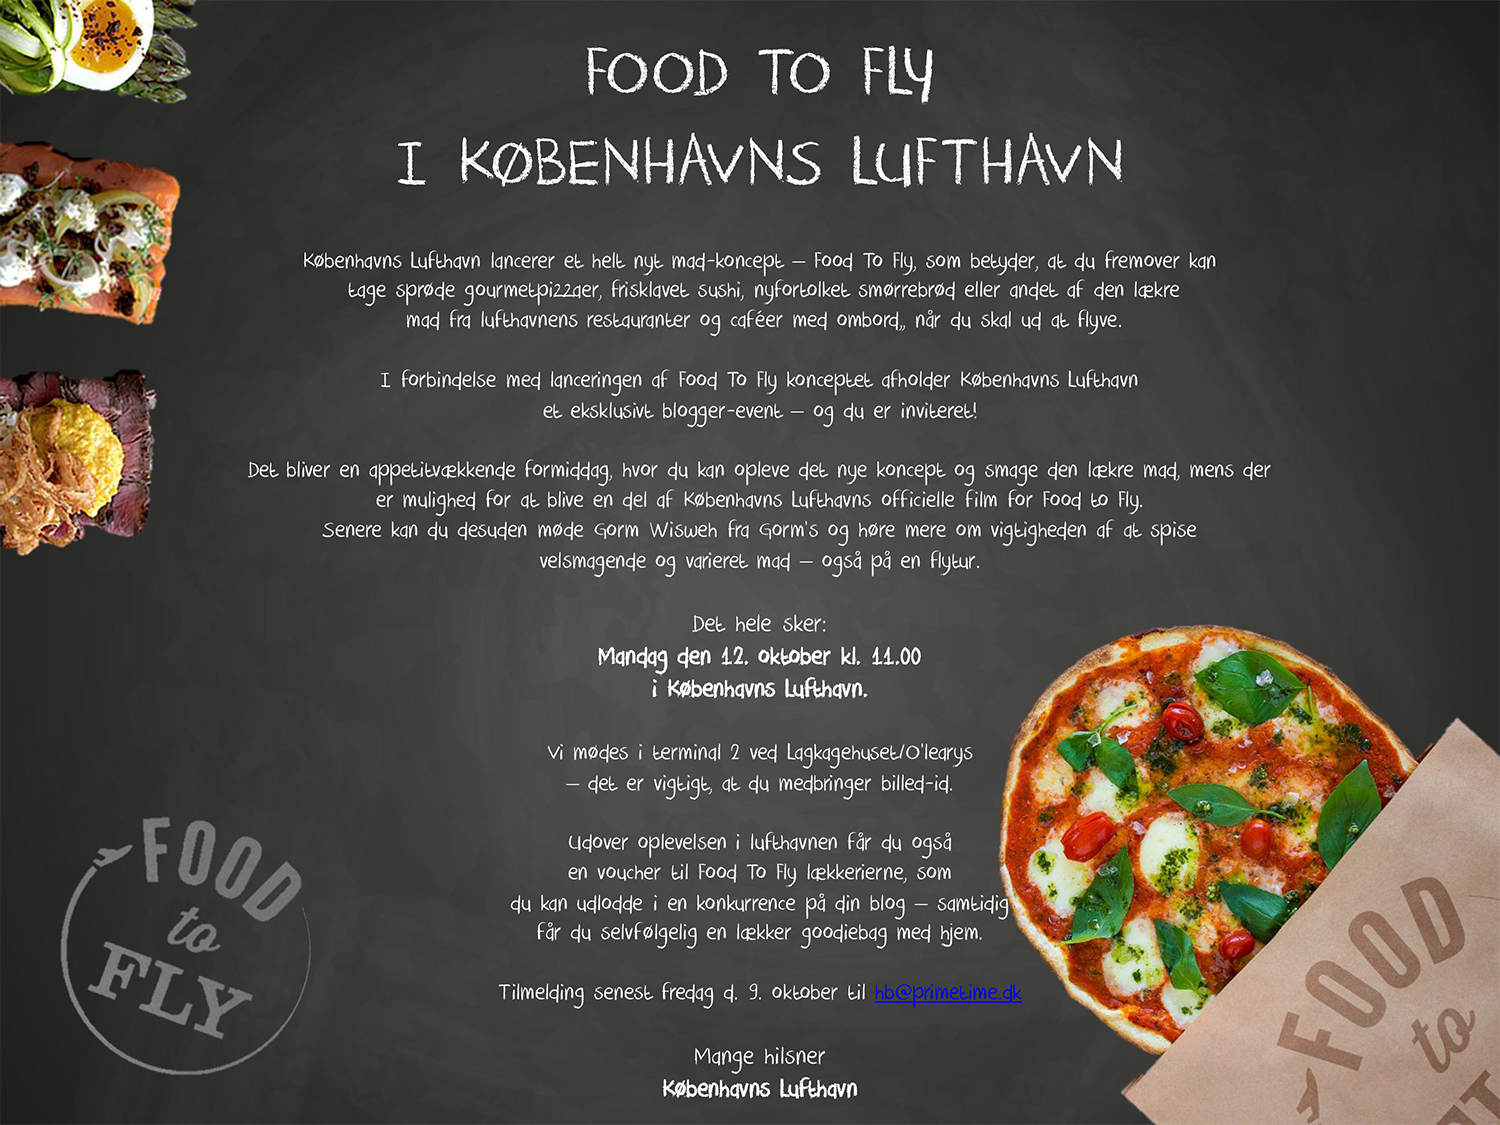 Food to fly